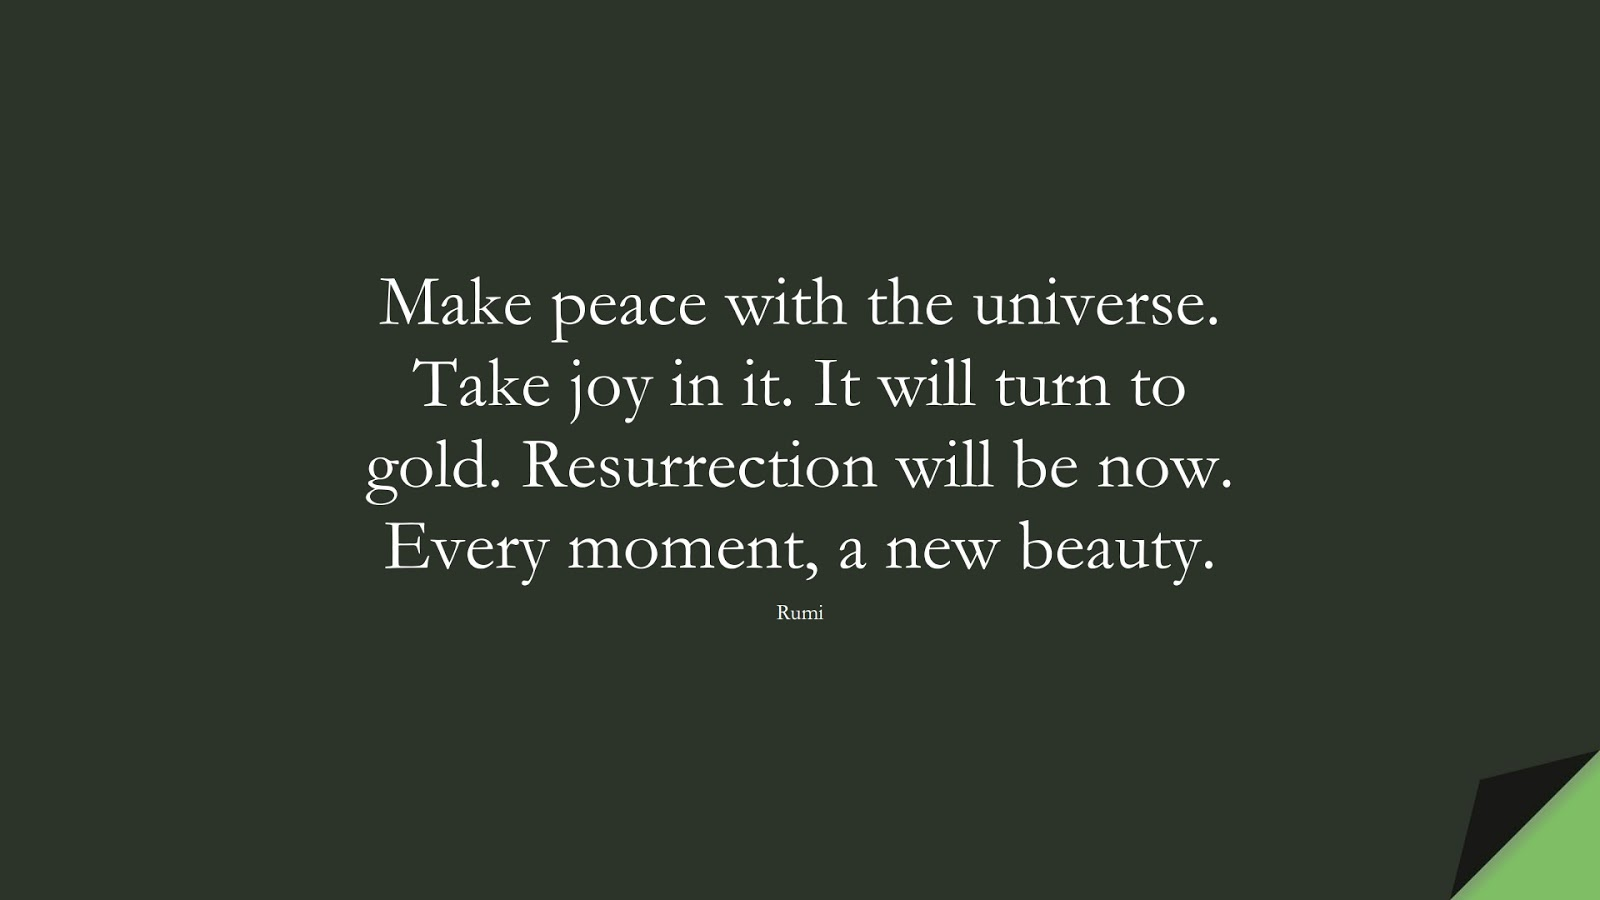 Make peace with the universe. Take joy in it. It will turn to gold. Resurrection will be now. Every moment, a new beauty. (Rumi);  #RumiQuotes